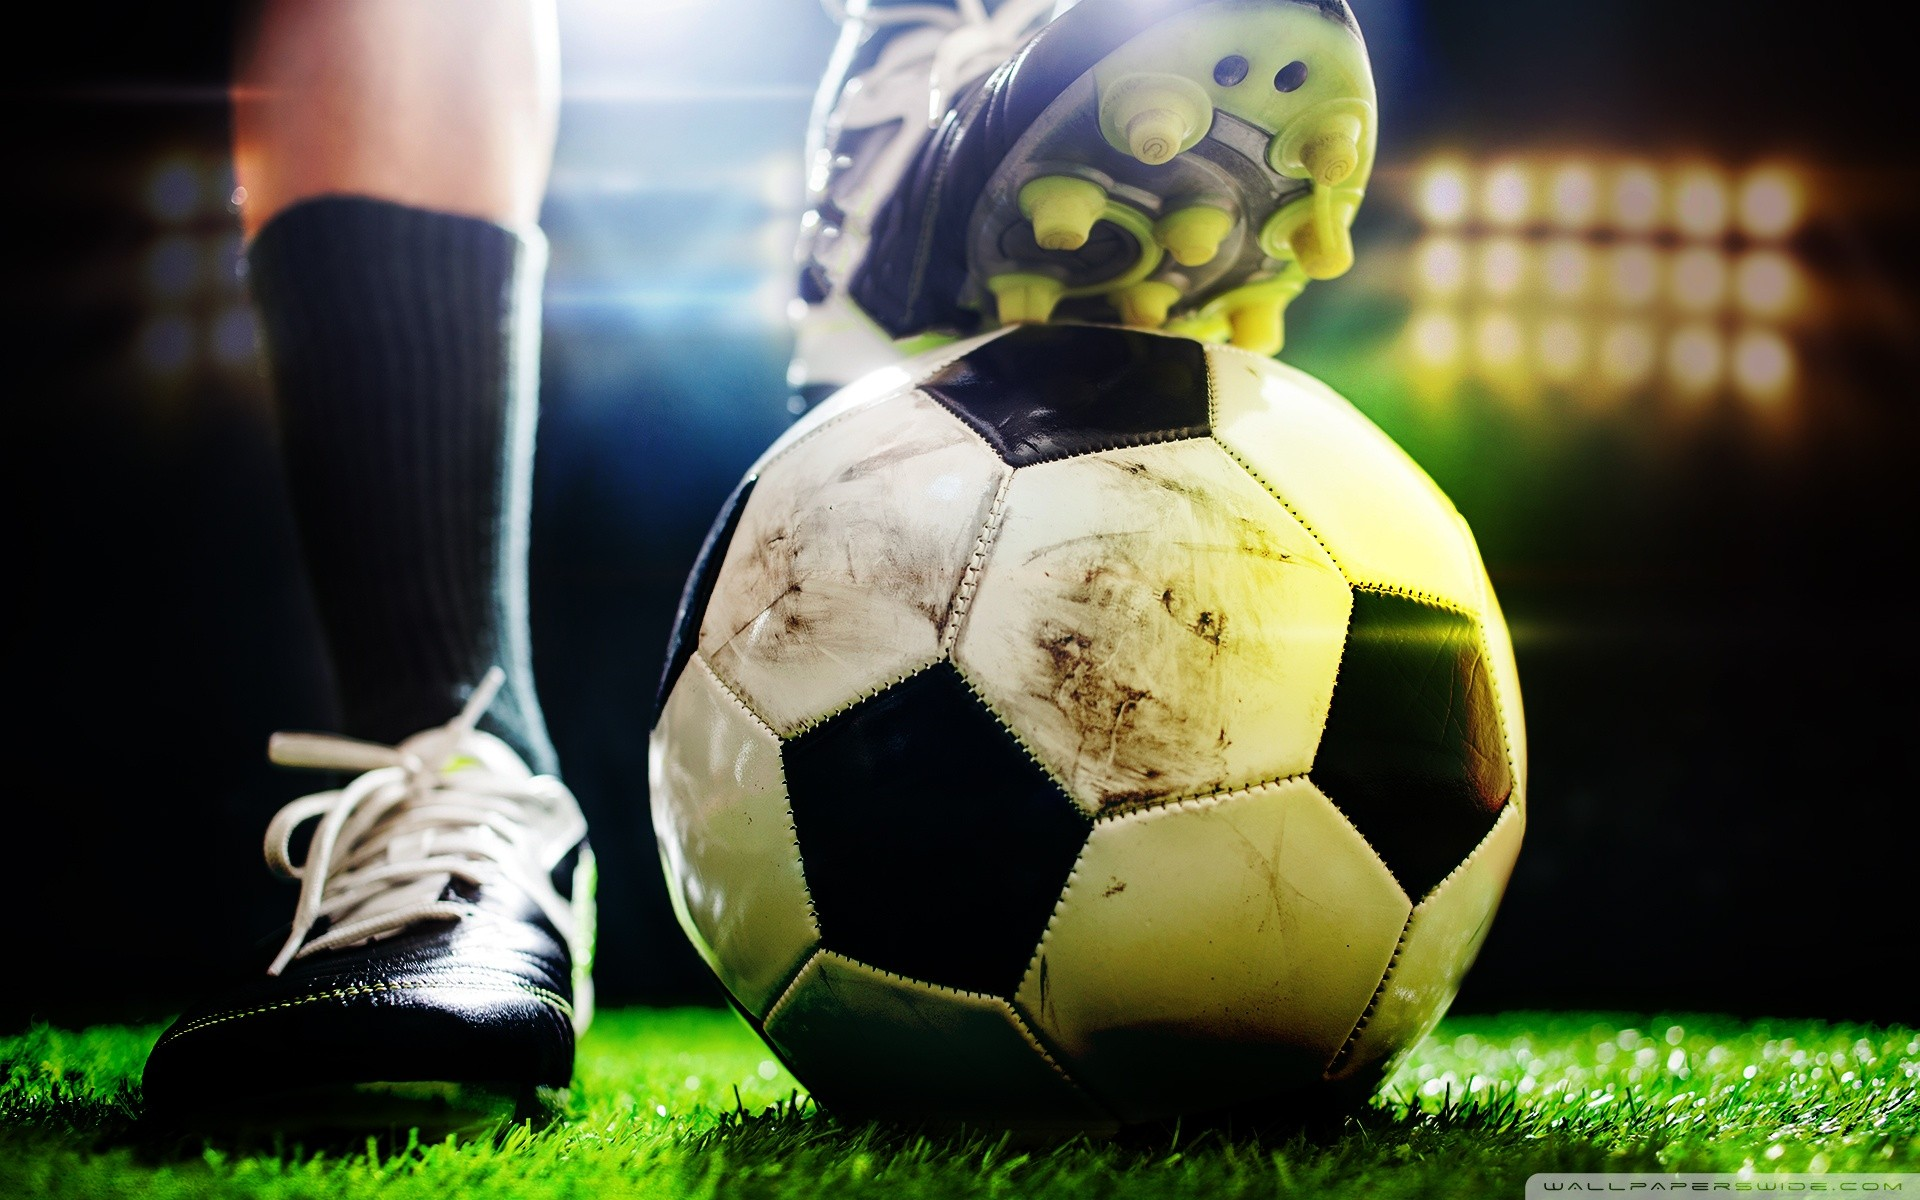 Hd Desktop Wallpaper For Football Lovers: Football Wallpaper ·① Download Free Awesome Full HD